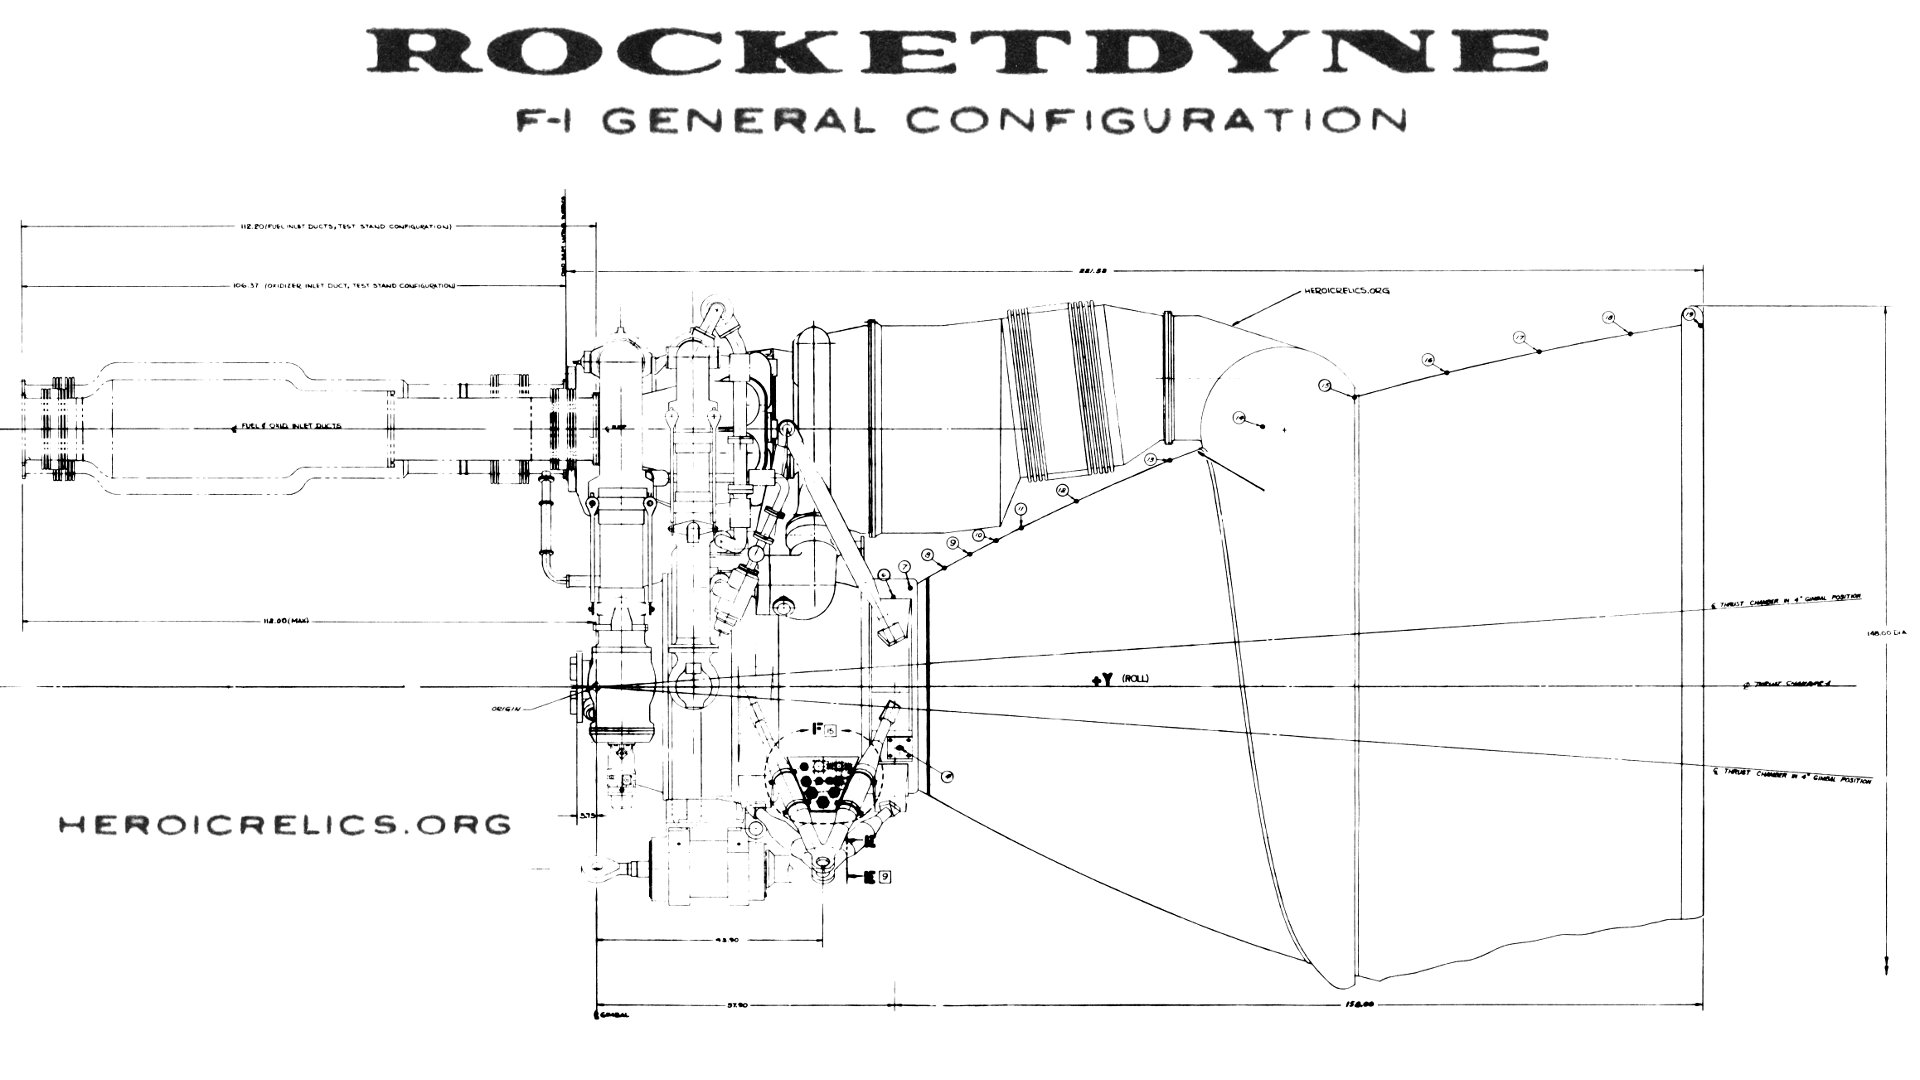 F 1 Rocket Engine General Configuration